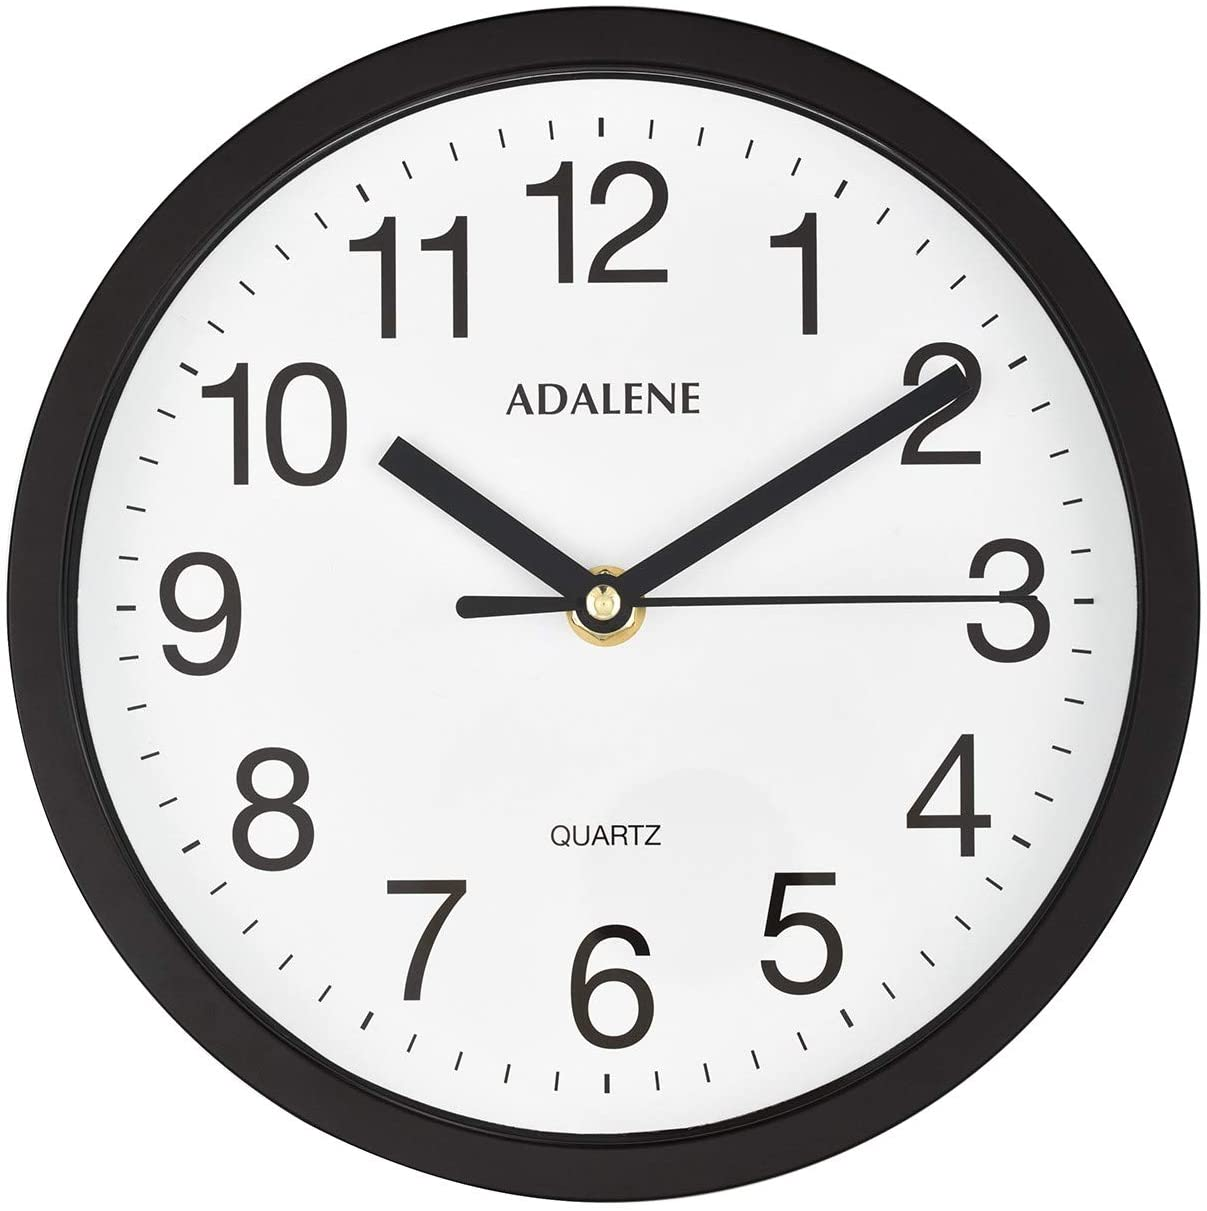 Adalene Small Wall Clocks Battery Operated 8 Inch for Living Room Décor, Modern Decorative Analog Wall Clock Non Ticking, Vintage Black Wall Clock Silent, Small Wall Clock for Bathroom Kitchen Bedroom